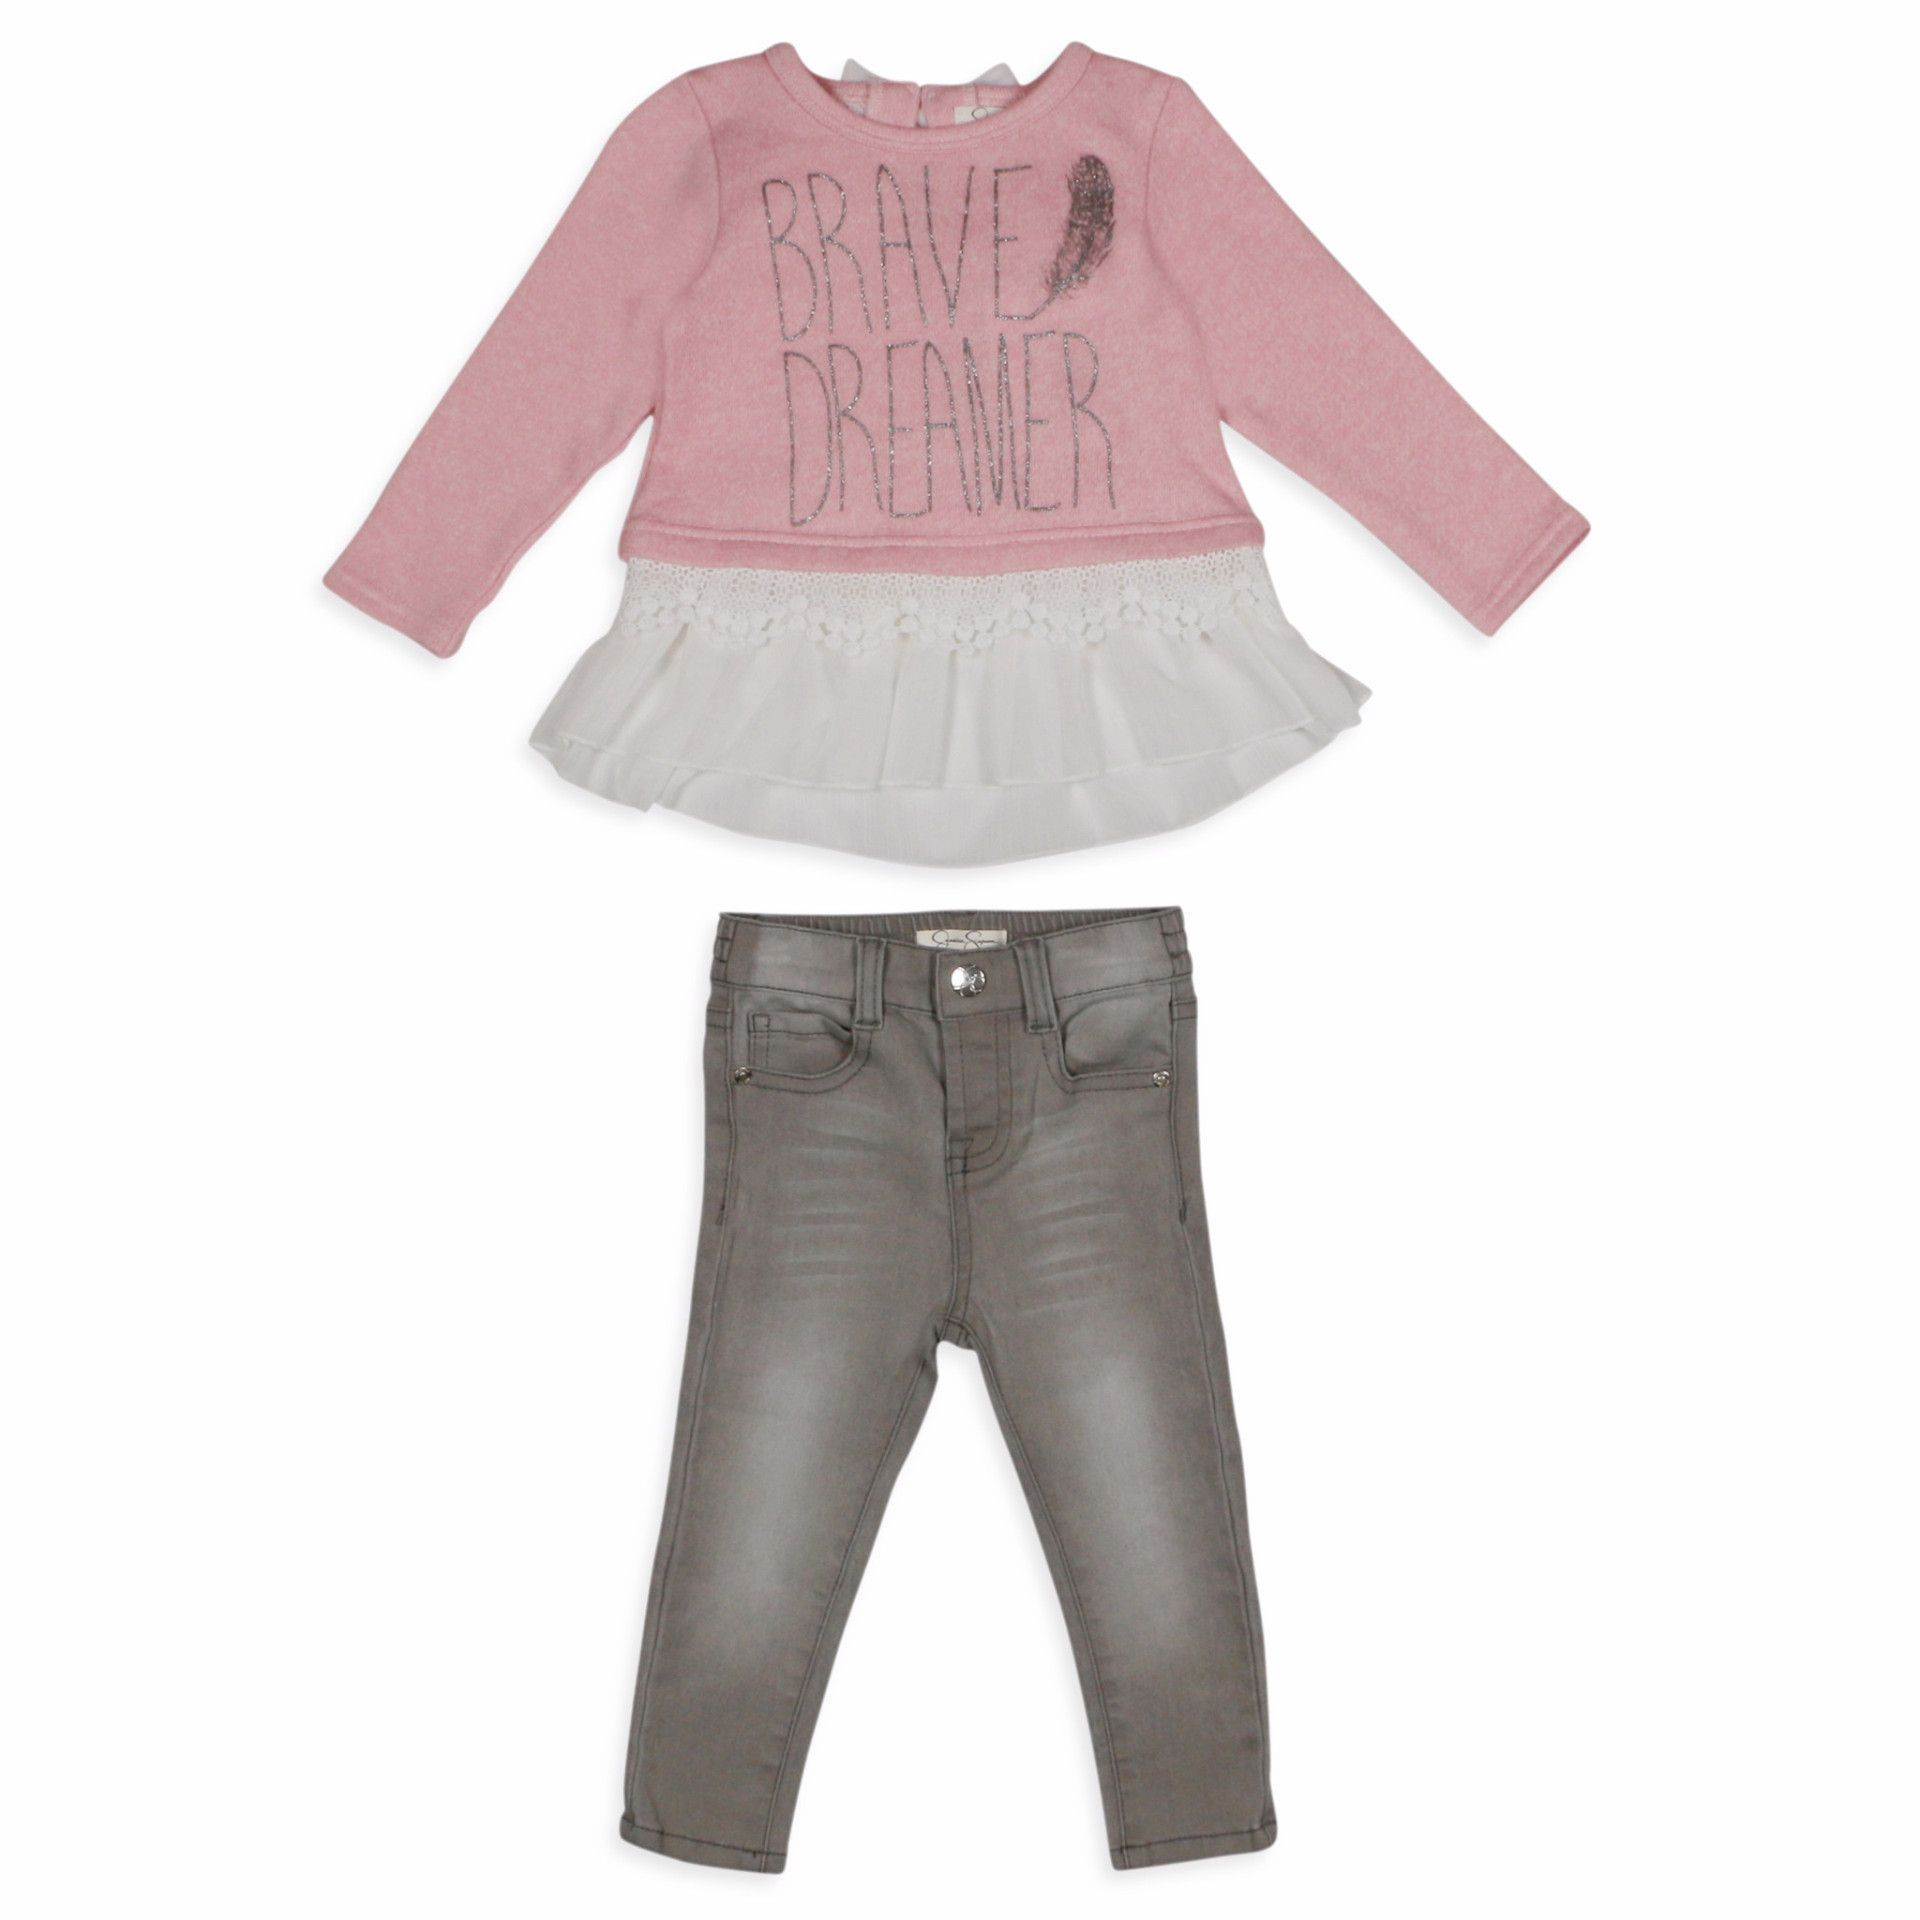 ce0a6e1c8ccfe Jessica Simpson Baby Girls 12-24 Months Brave Dreamer 2 pc Set ...